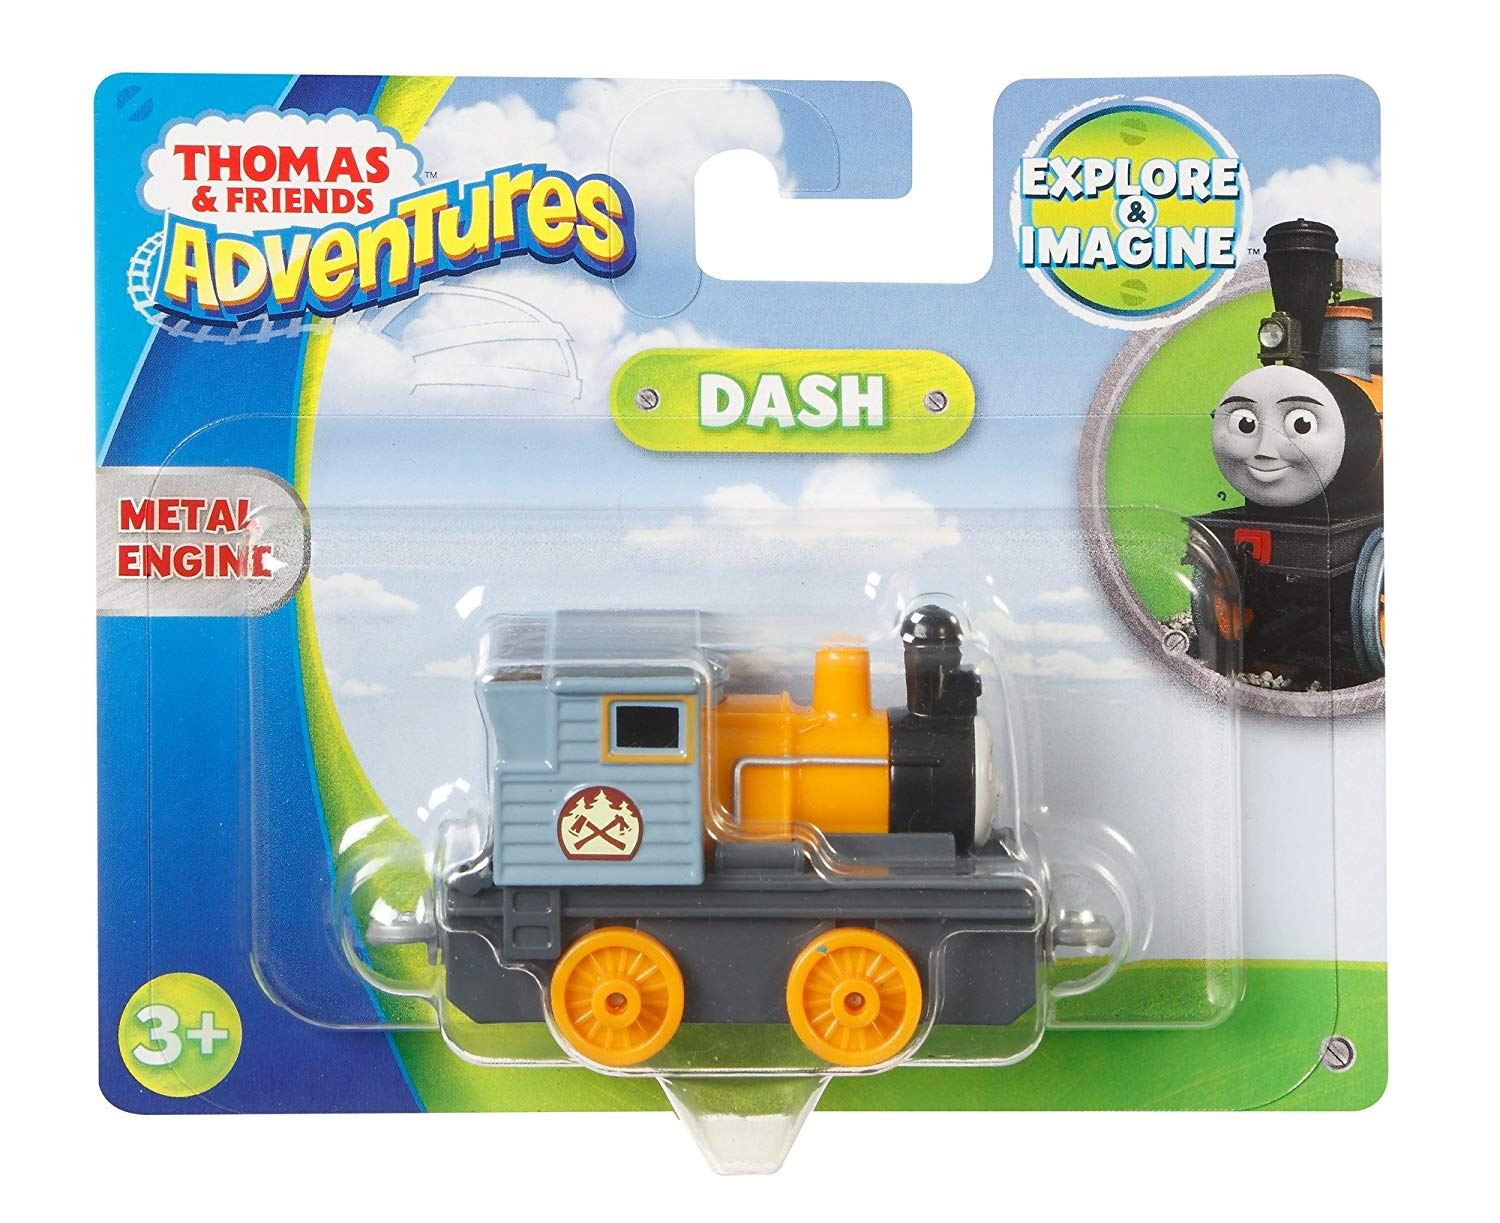 Thomas-amp-Friends-Adventures-Ferdinand-lexi-Shane-Dash-Huge-Bill-Trains Indexbild 11